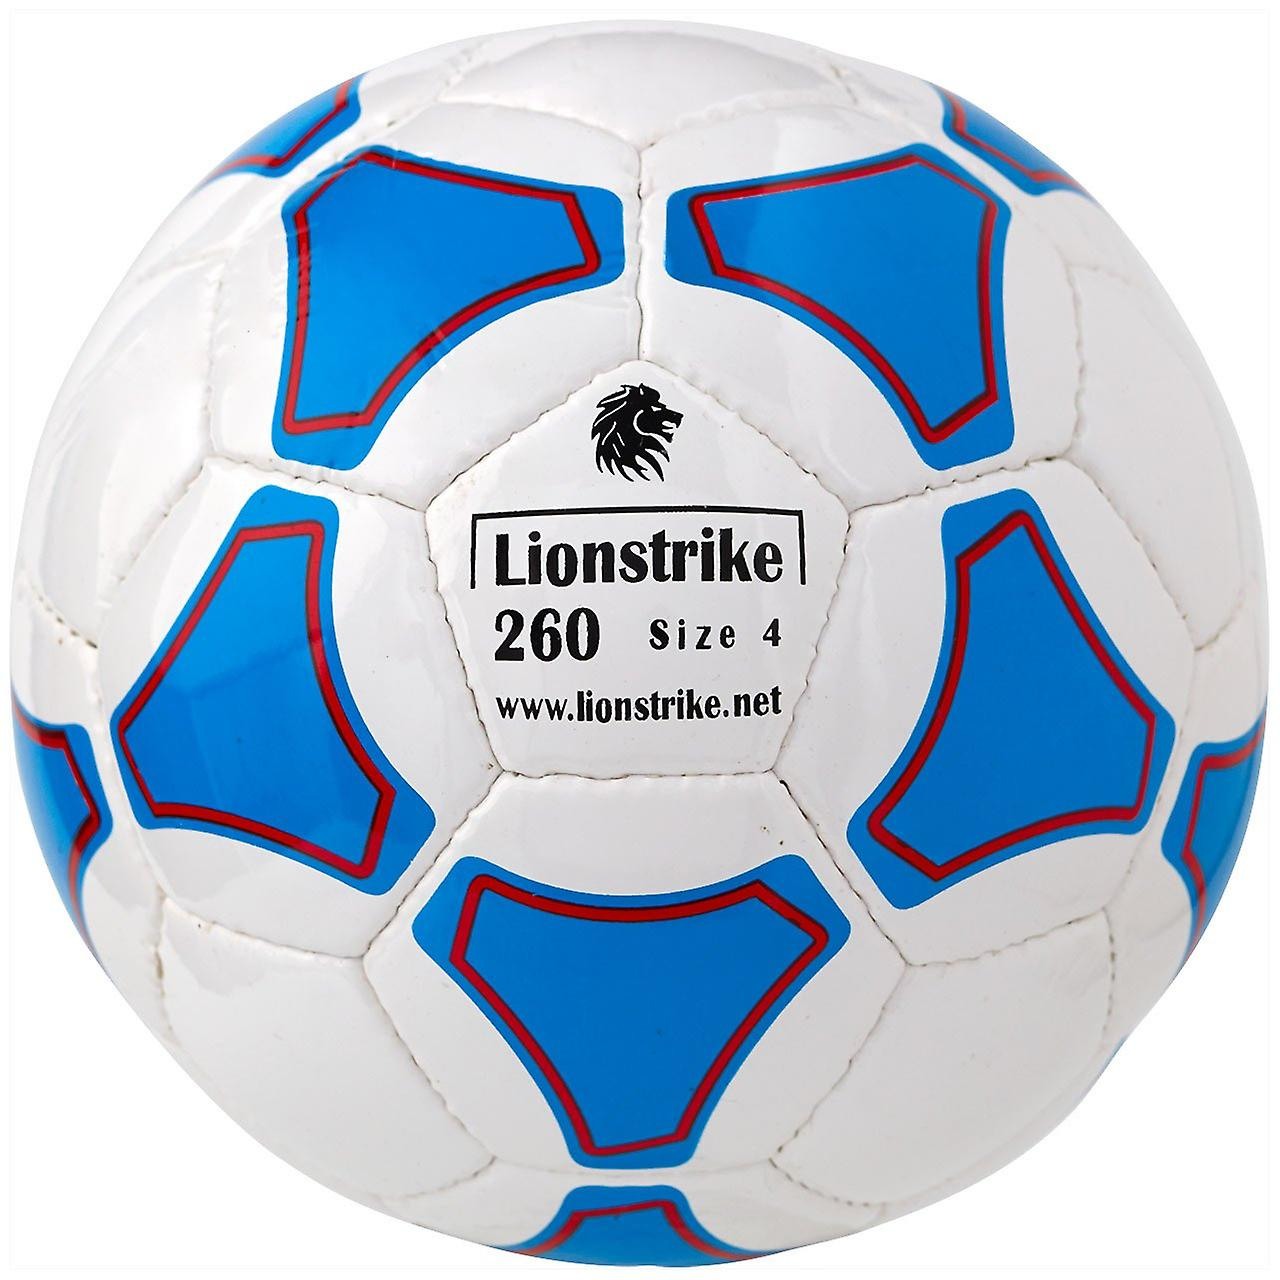 Lionstrike 260 leather football (size 4) - white